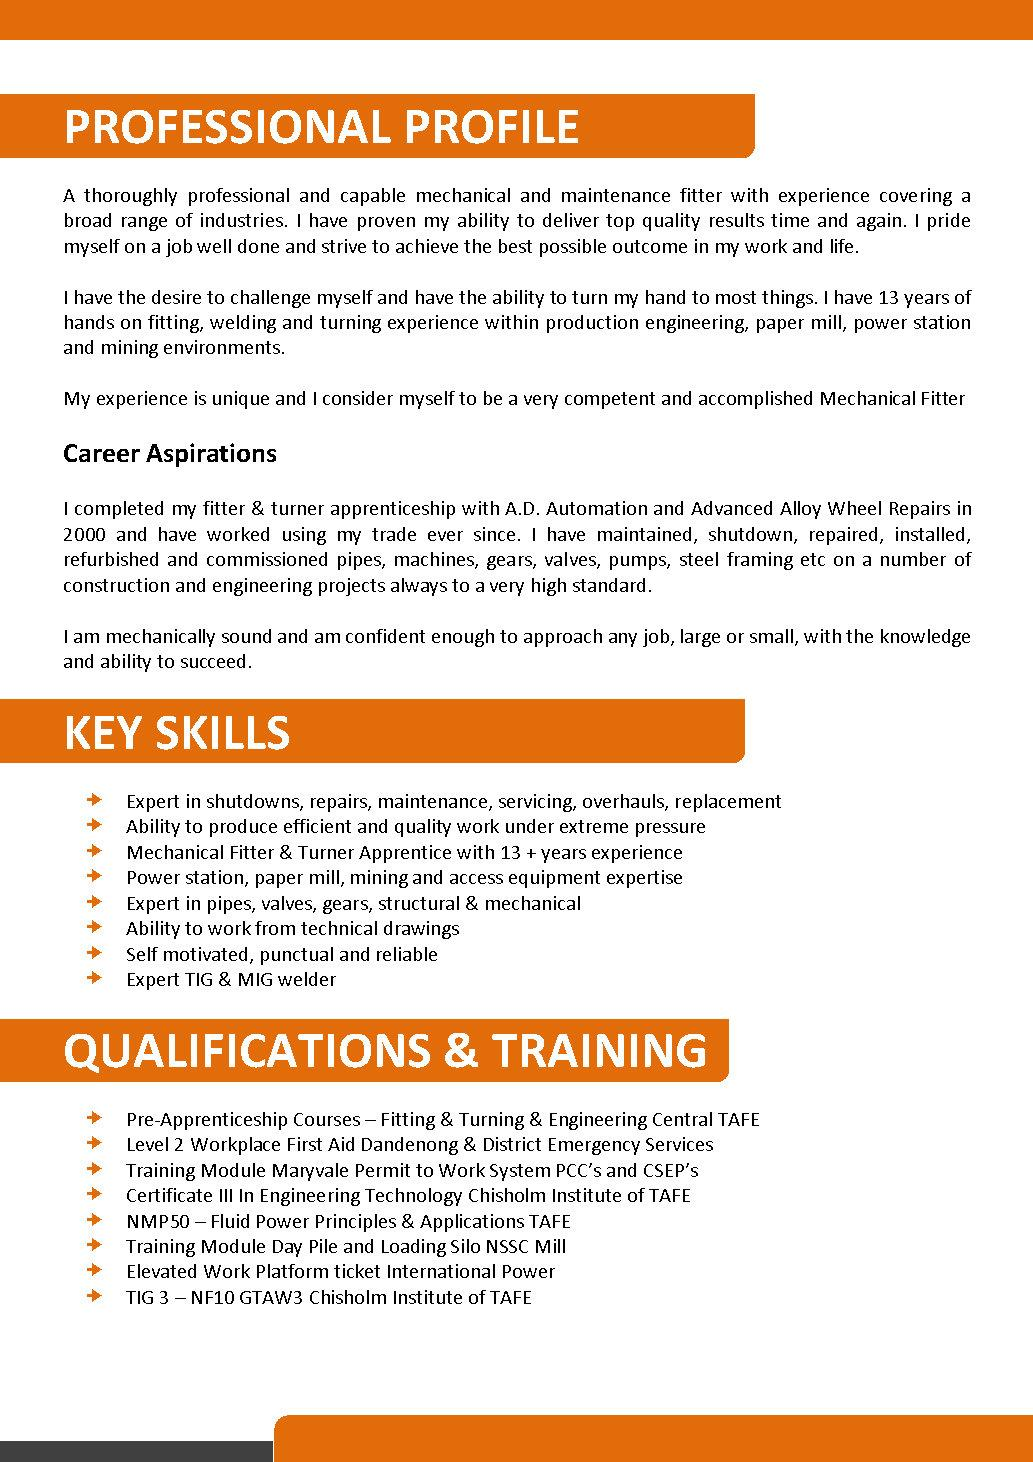 Resume writing services: profesional writers will help you to get the job of your dream